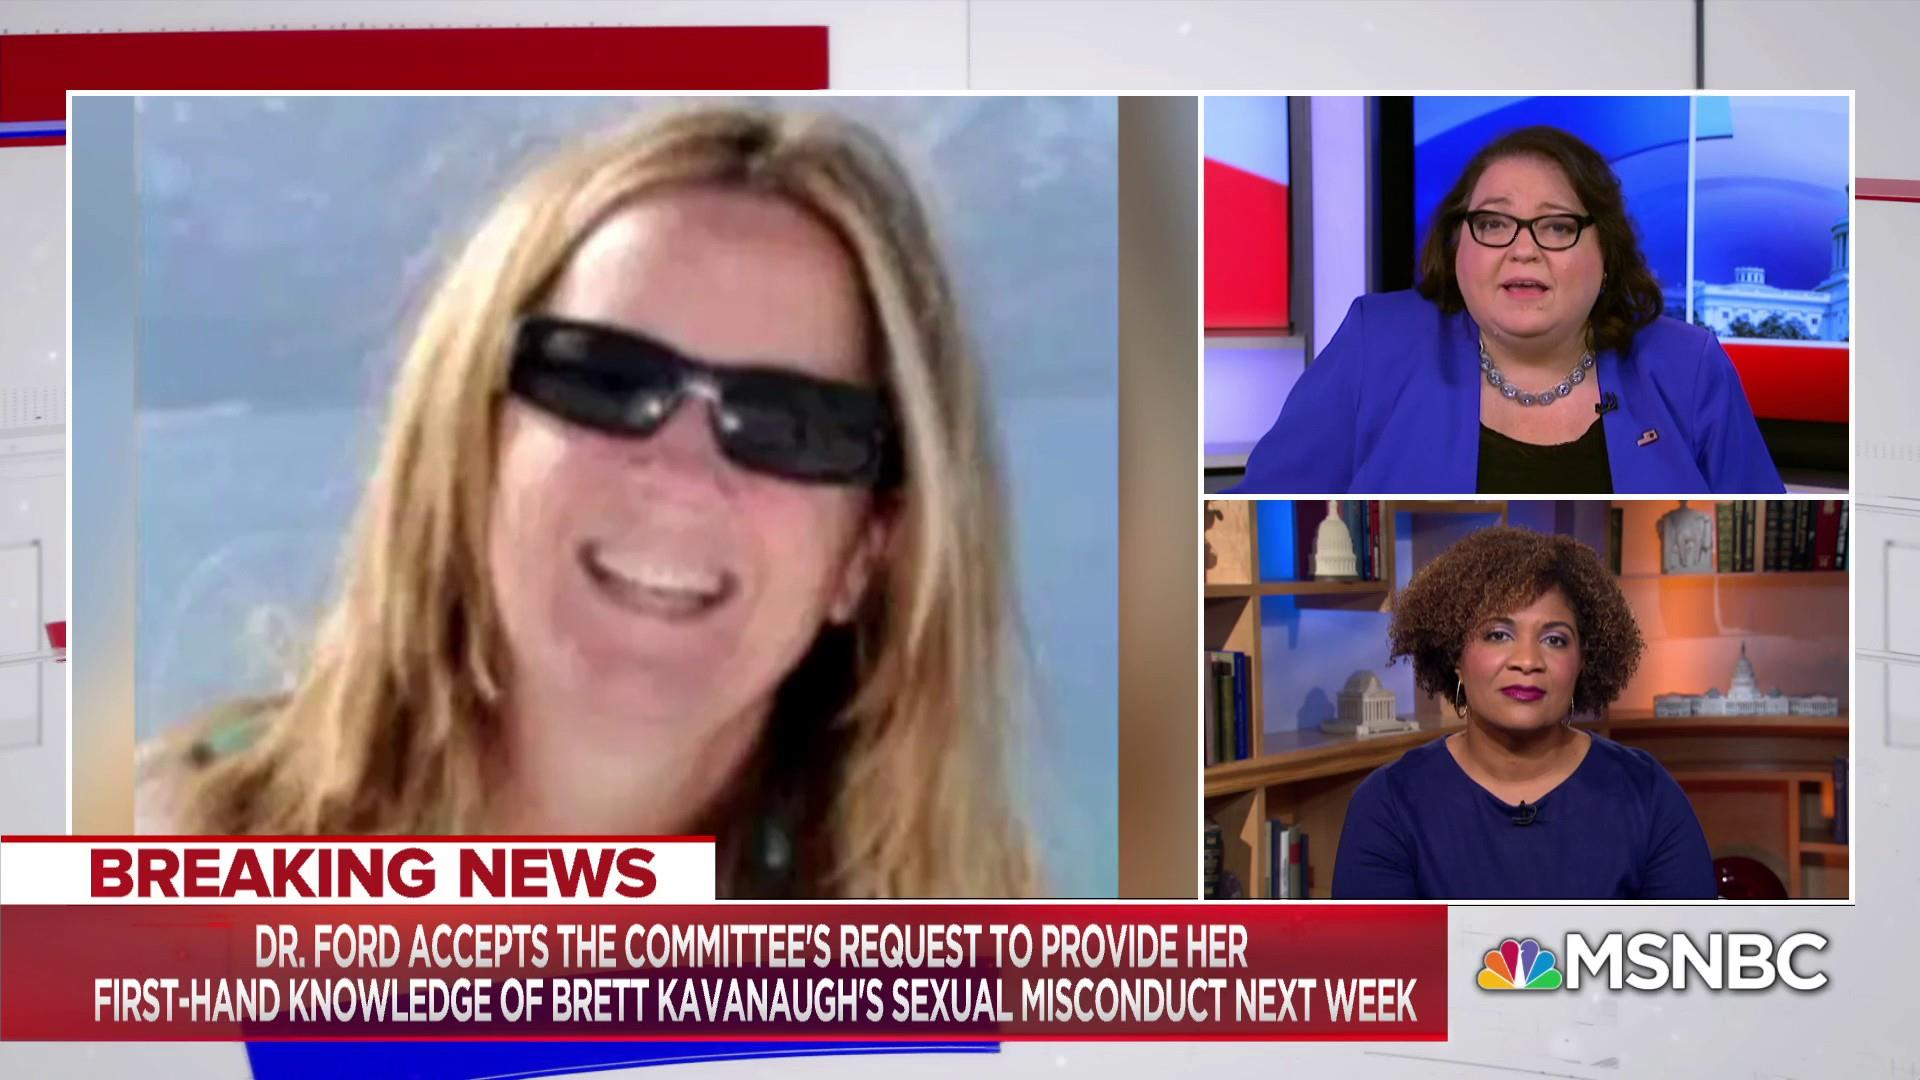 Law advocate: GOP using 'bullying tactics' on Kavanaugh accuser